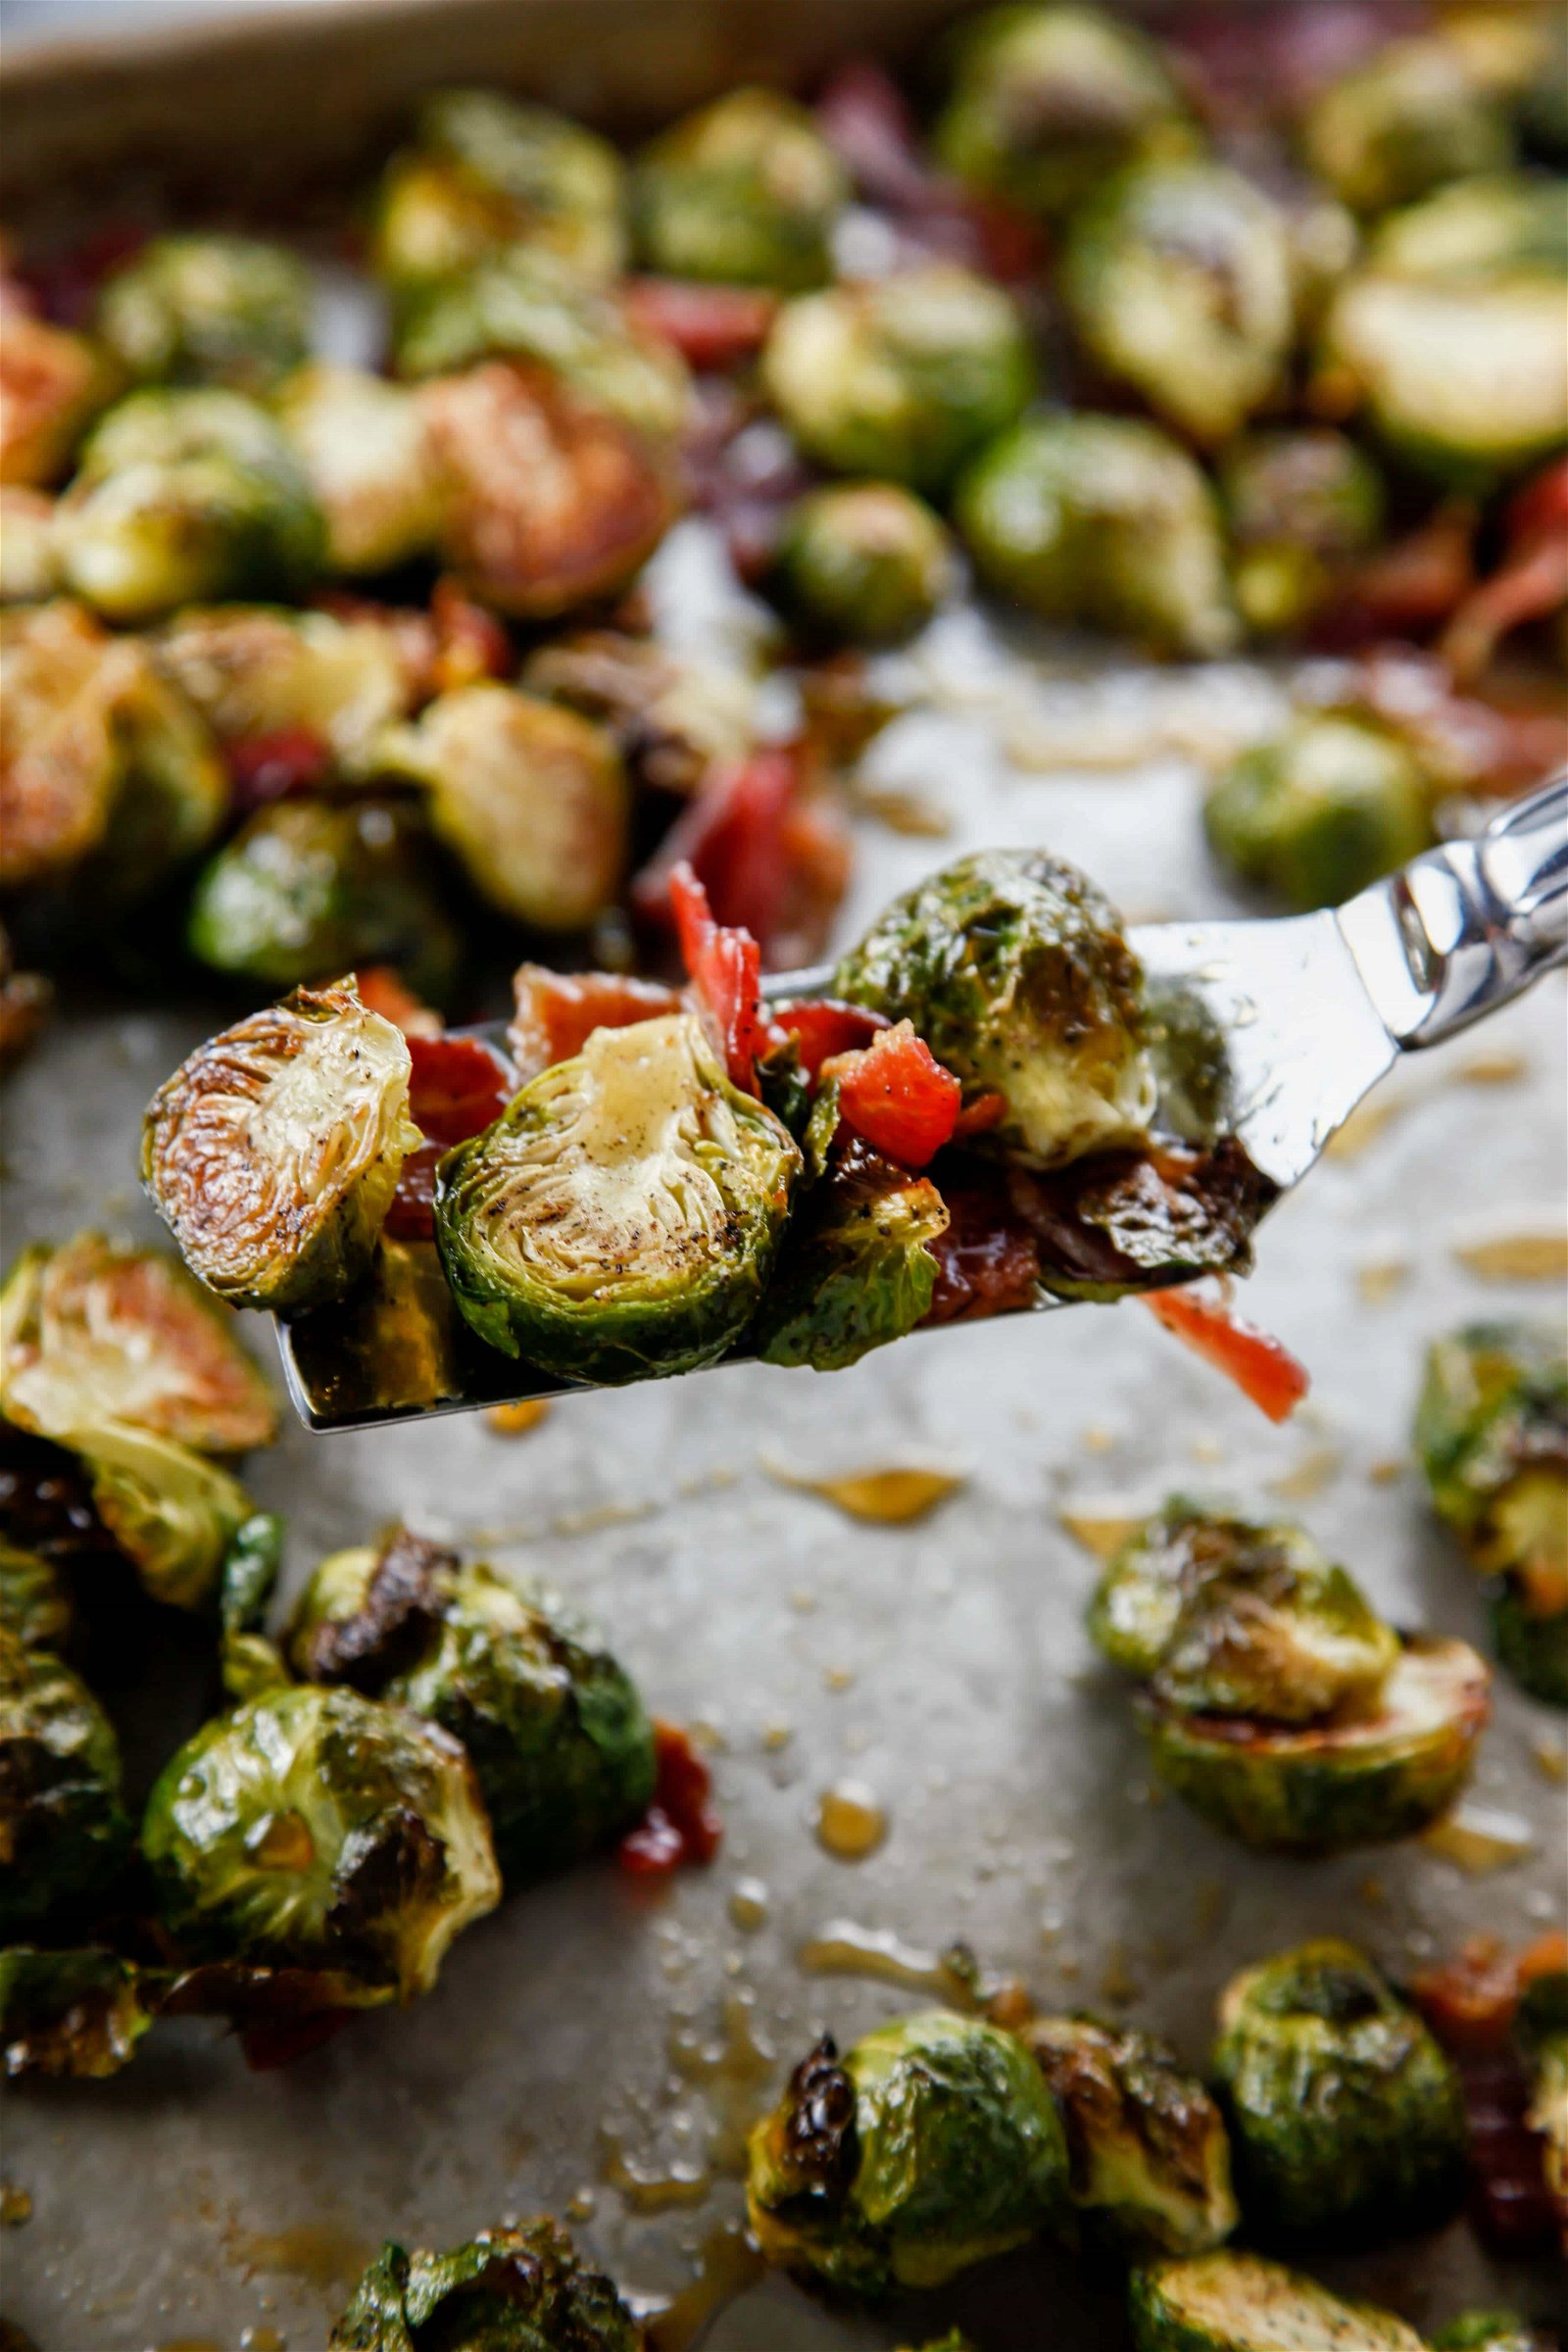 1629014219_65_Roasted-Brussel-Sprouts-with-Bacon